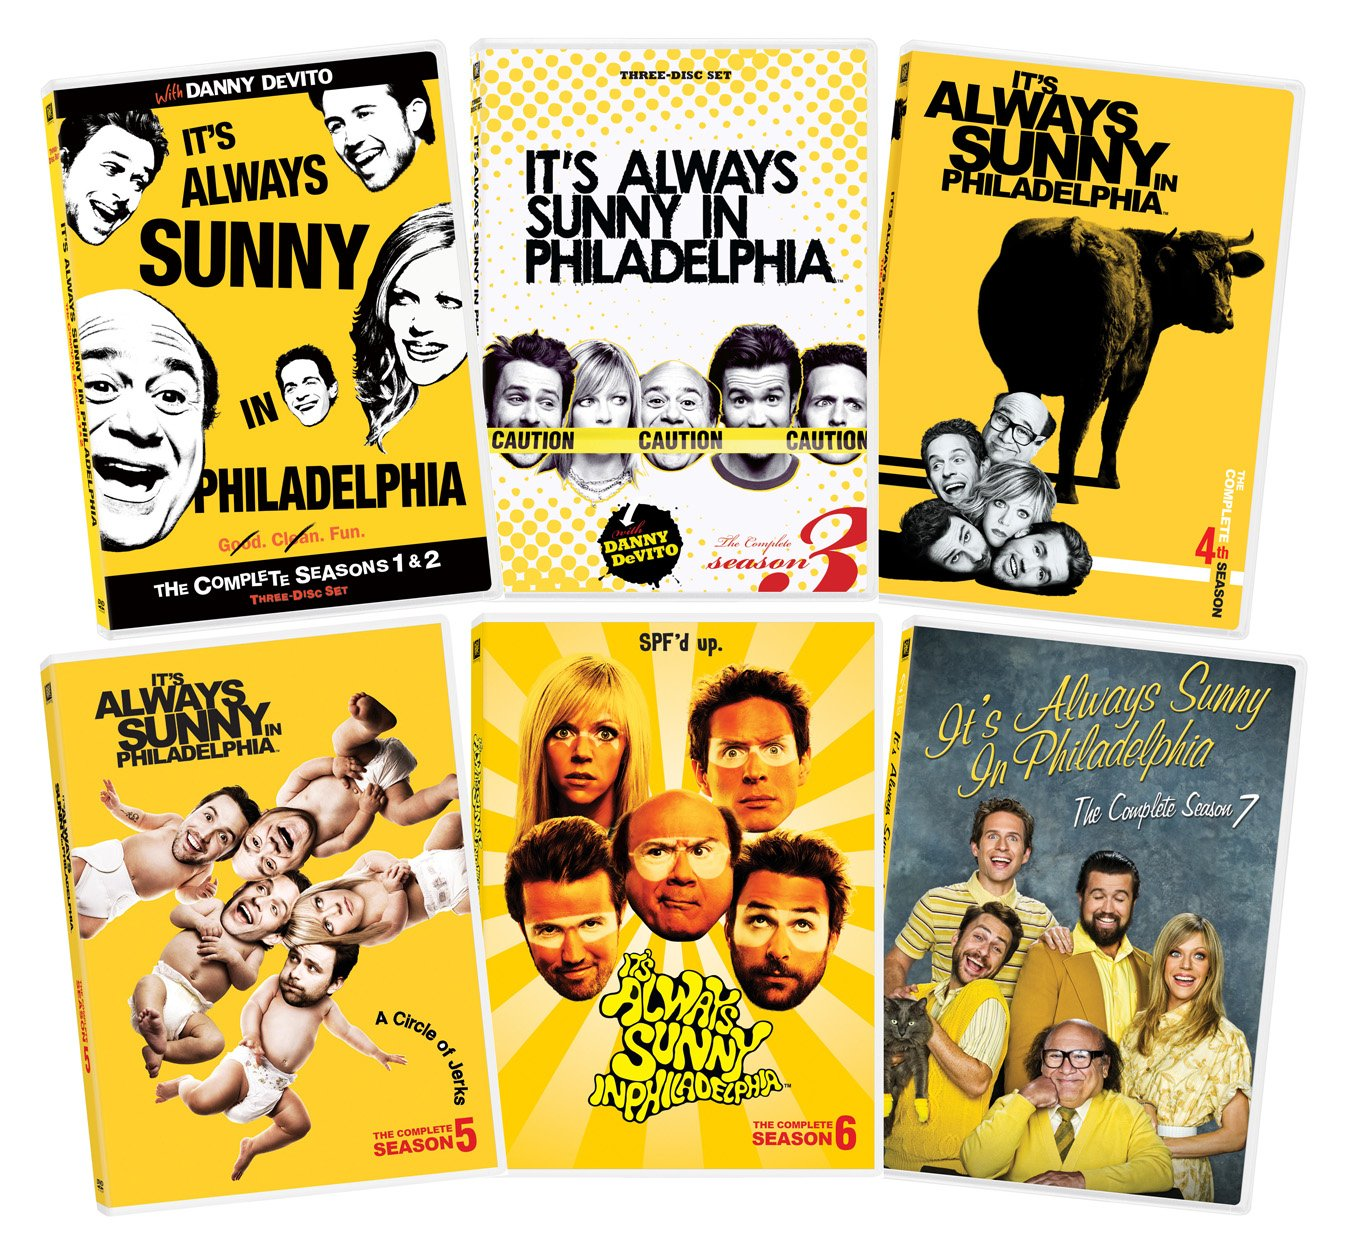 It's Always Sunny In Philadelphia Seasons 1-7 Collection by 20th Century Fox